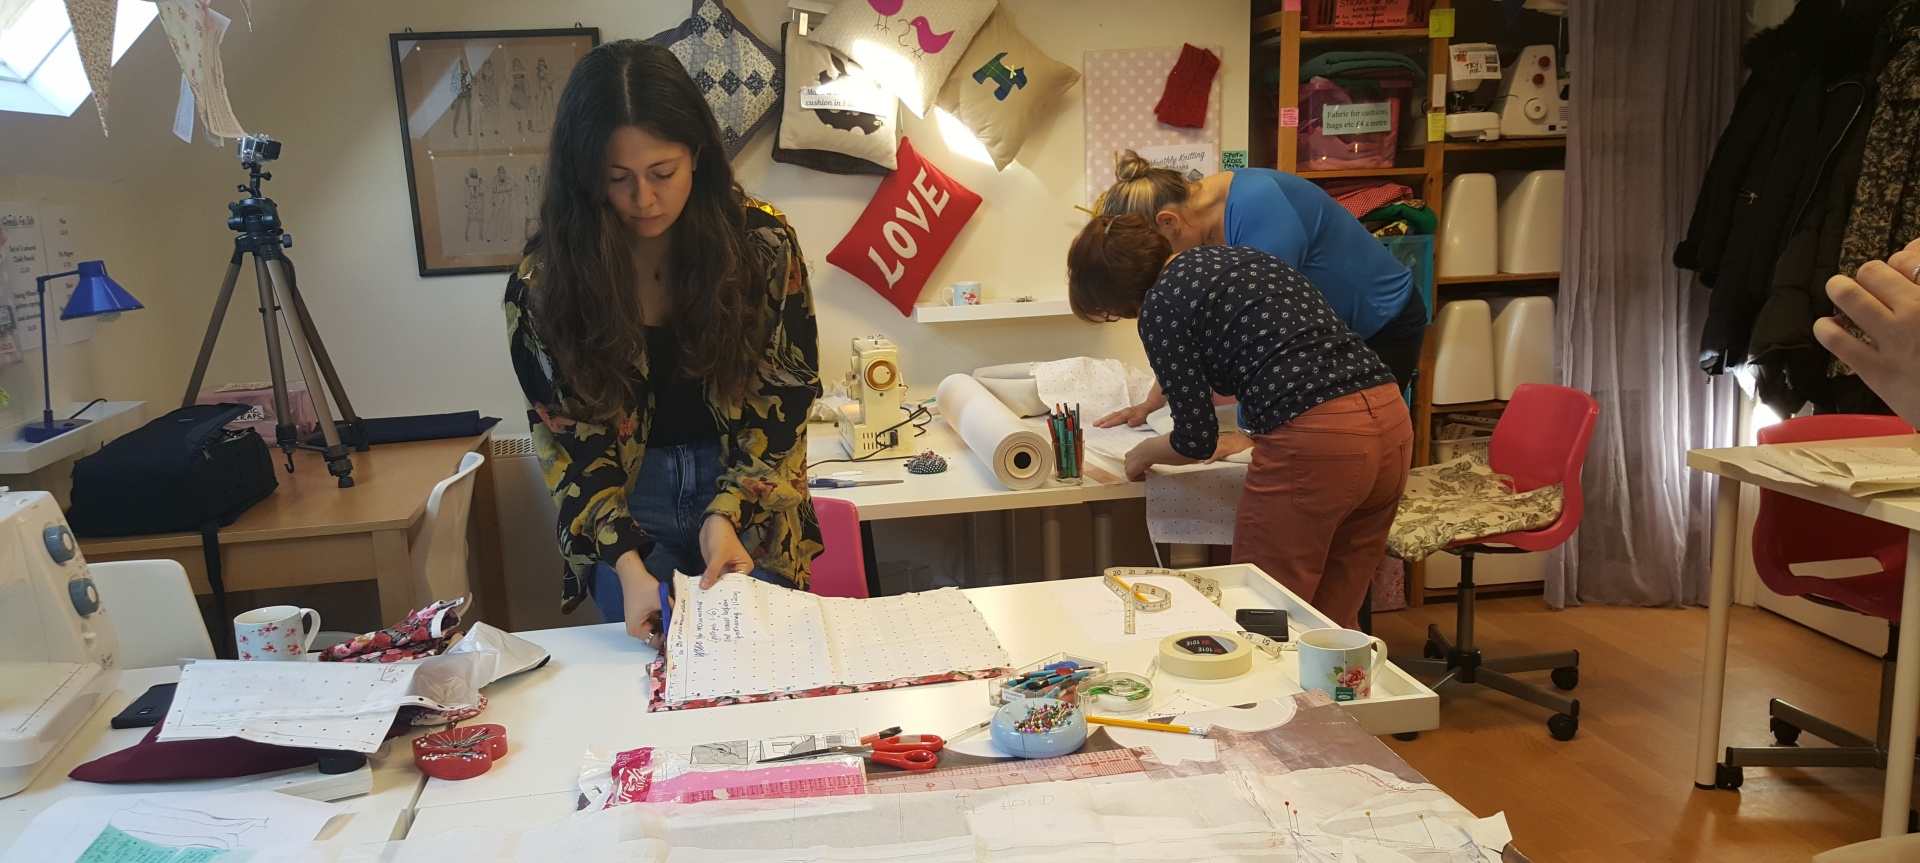 Private 2hr Sewing Lesson In Brighton-1